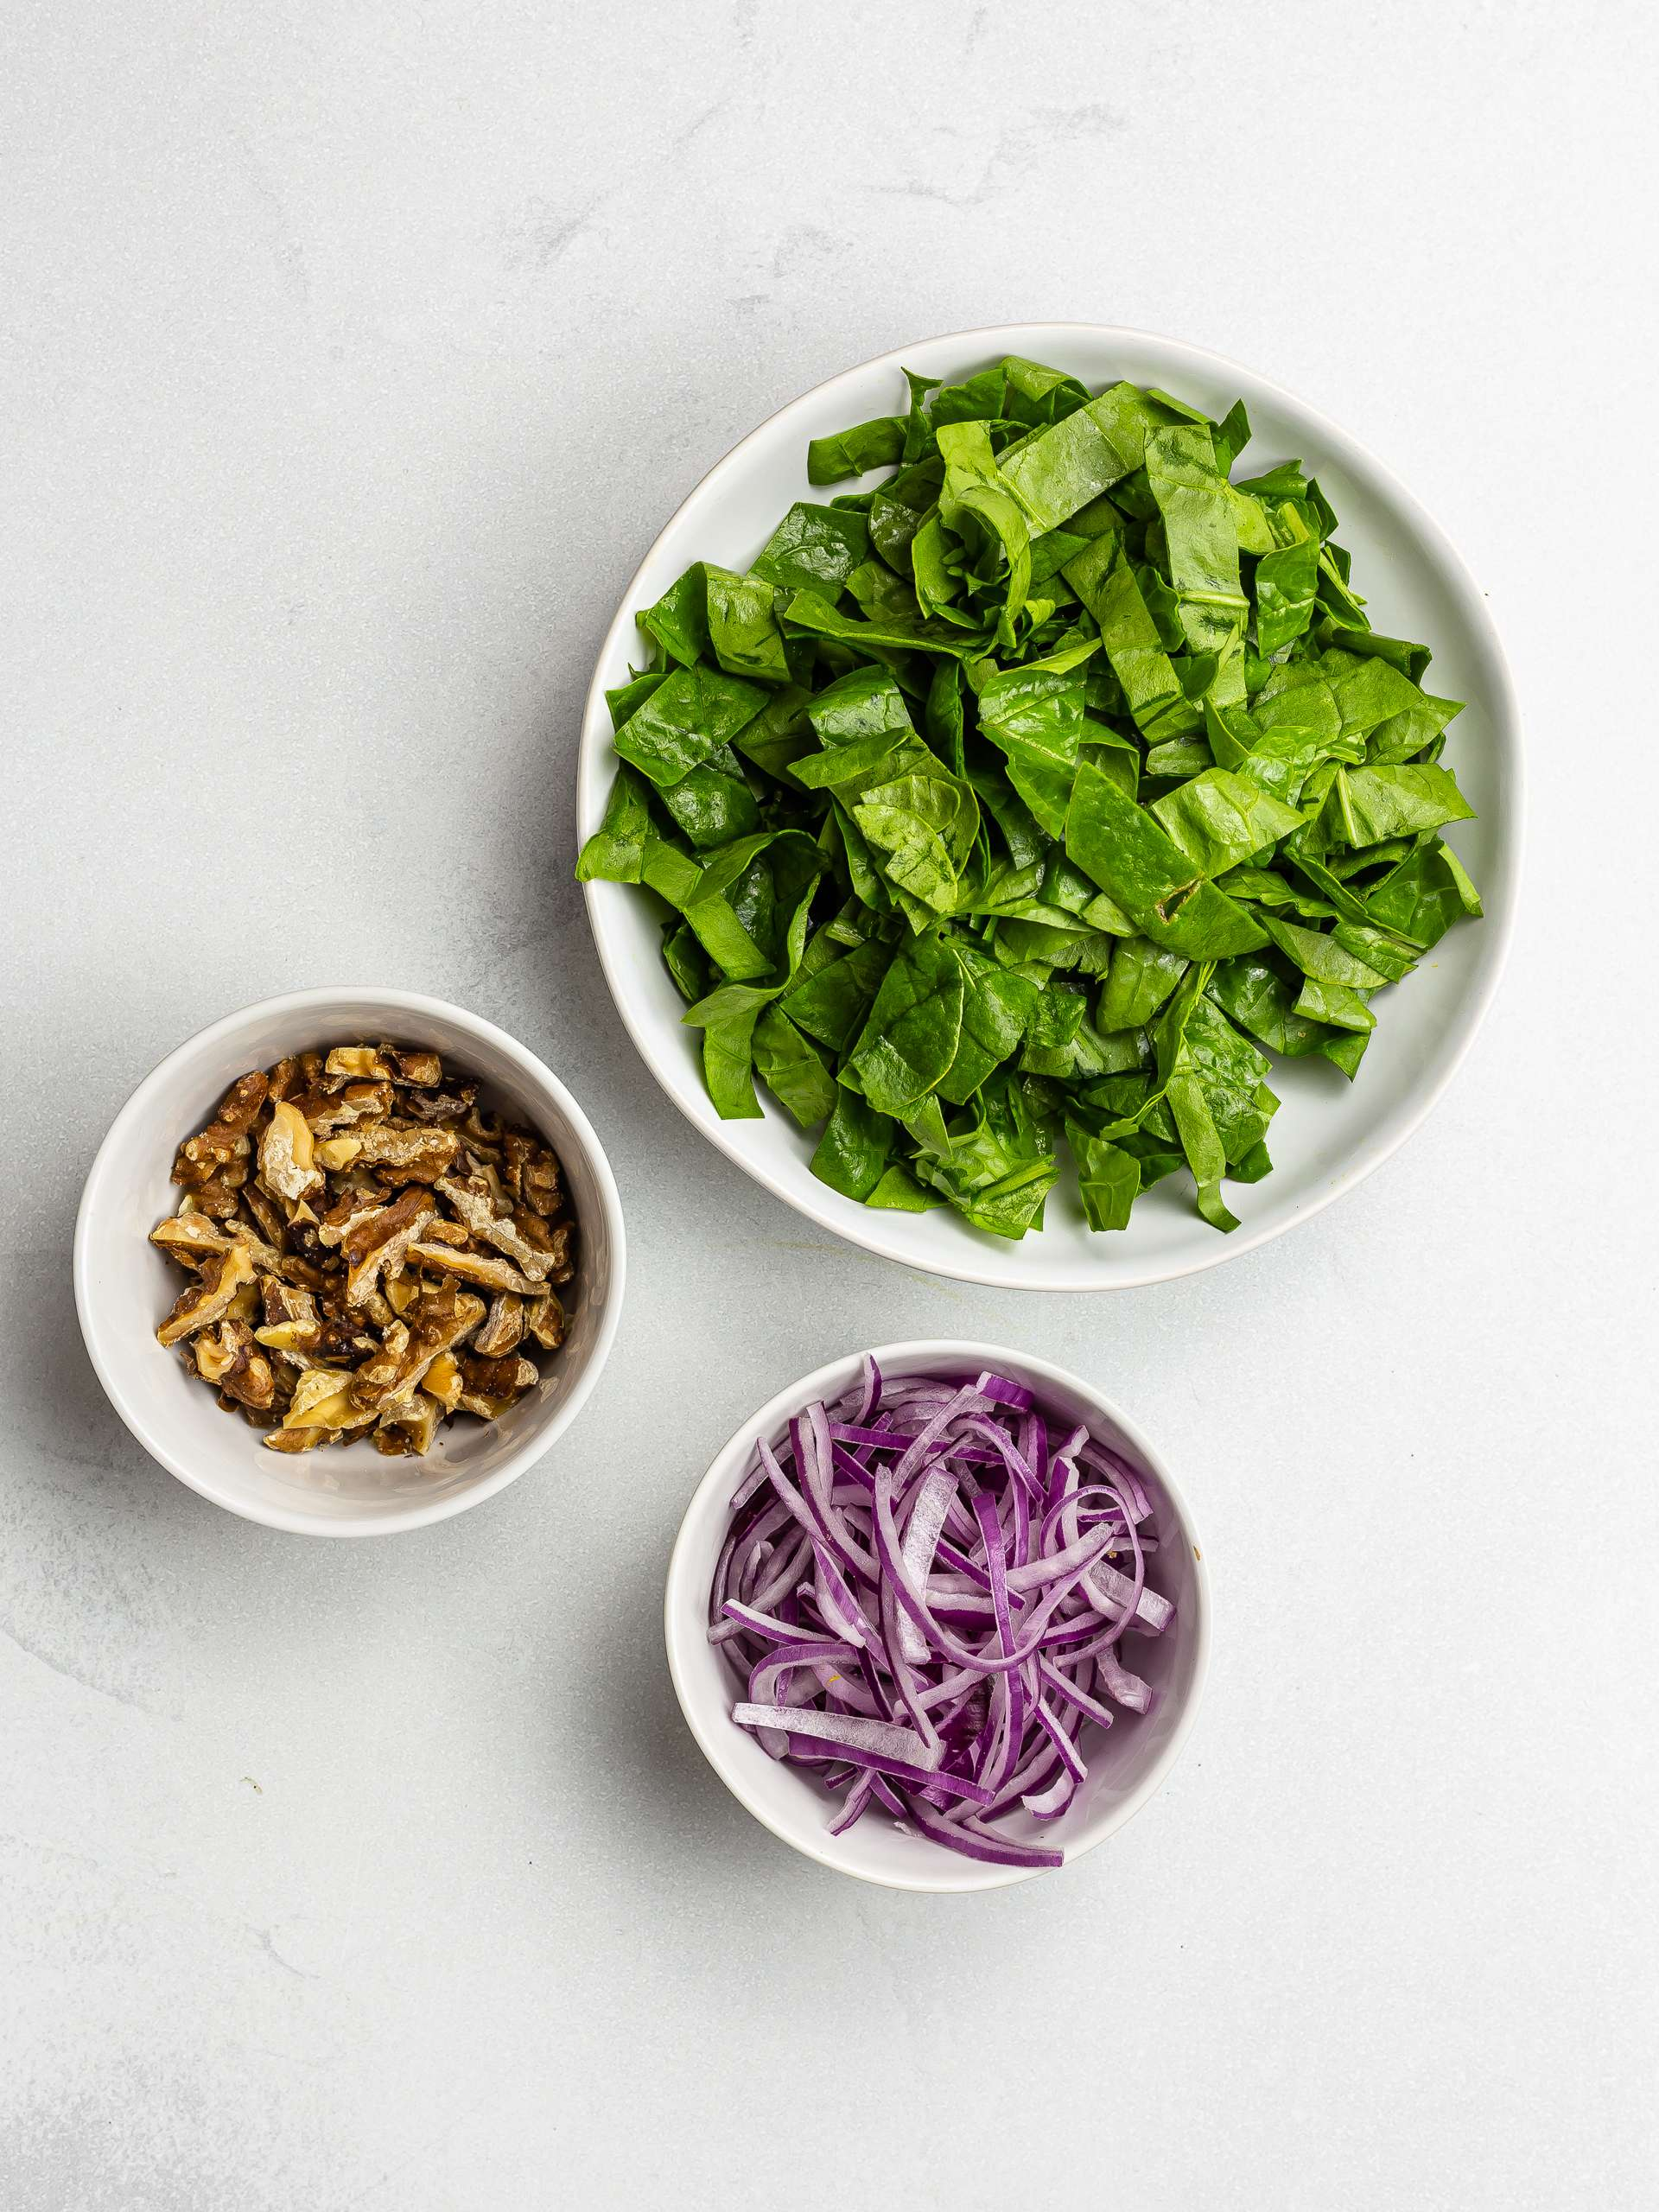 chopped spinach, onions, and walnuts